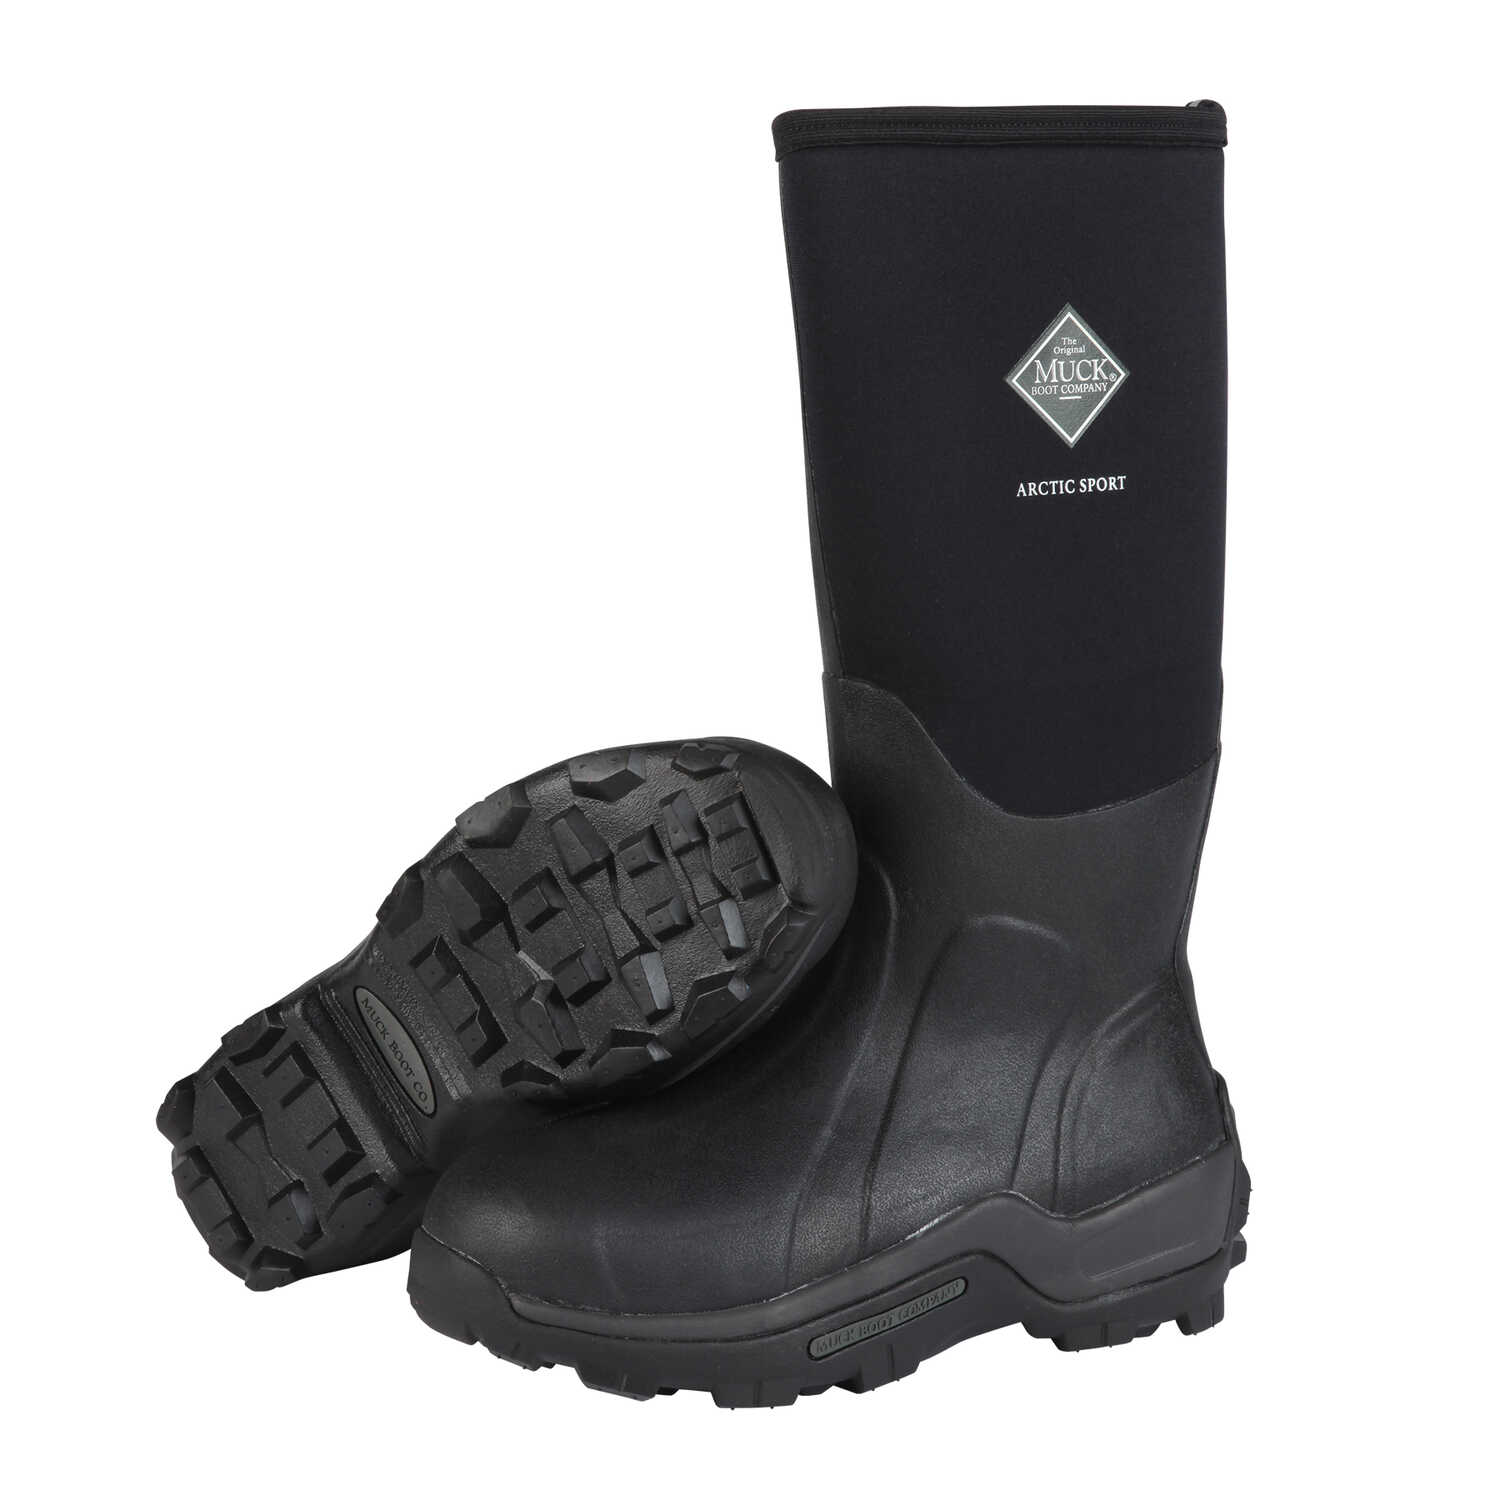 The Original Muck Boot Company  Arctic Sport  Men's  Boots  7 US  Black